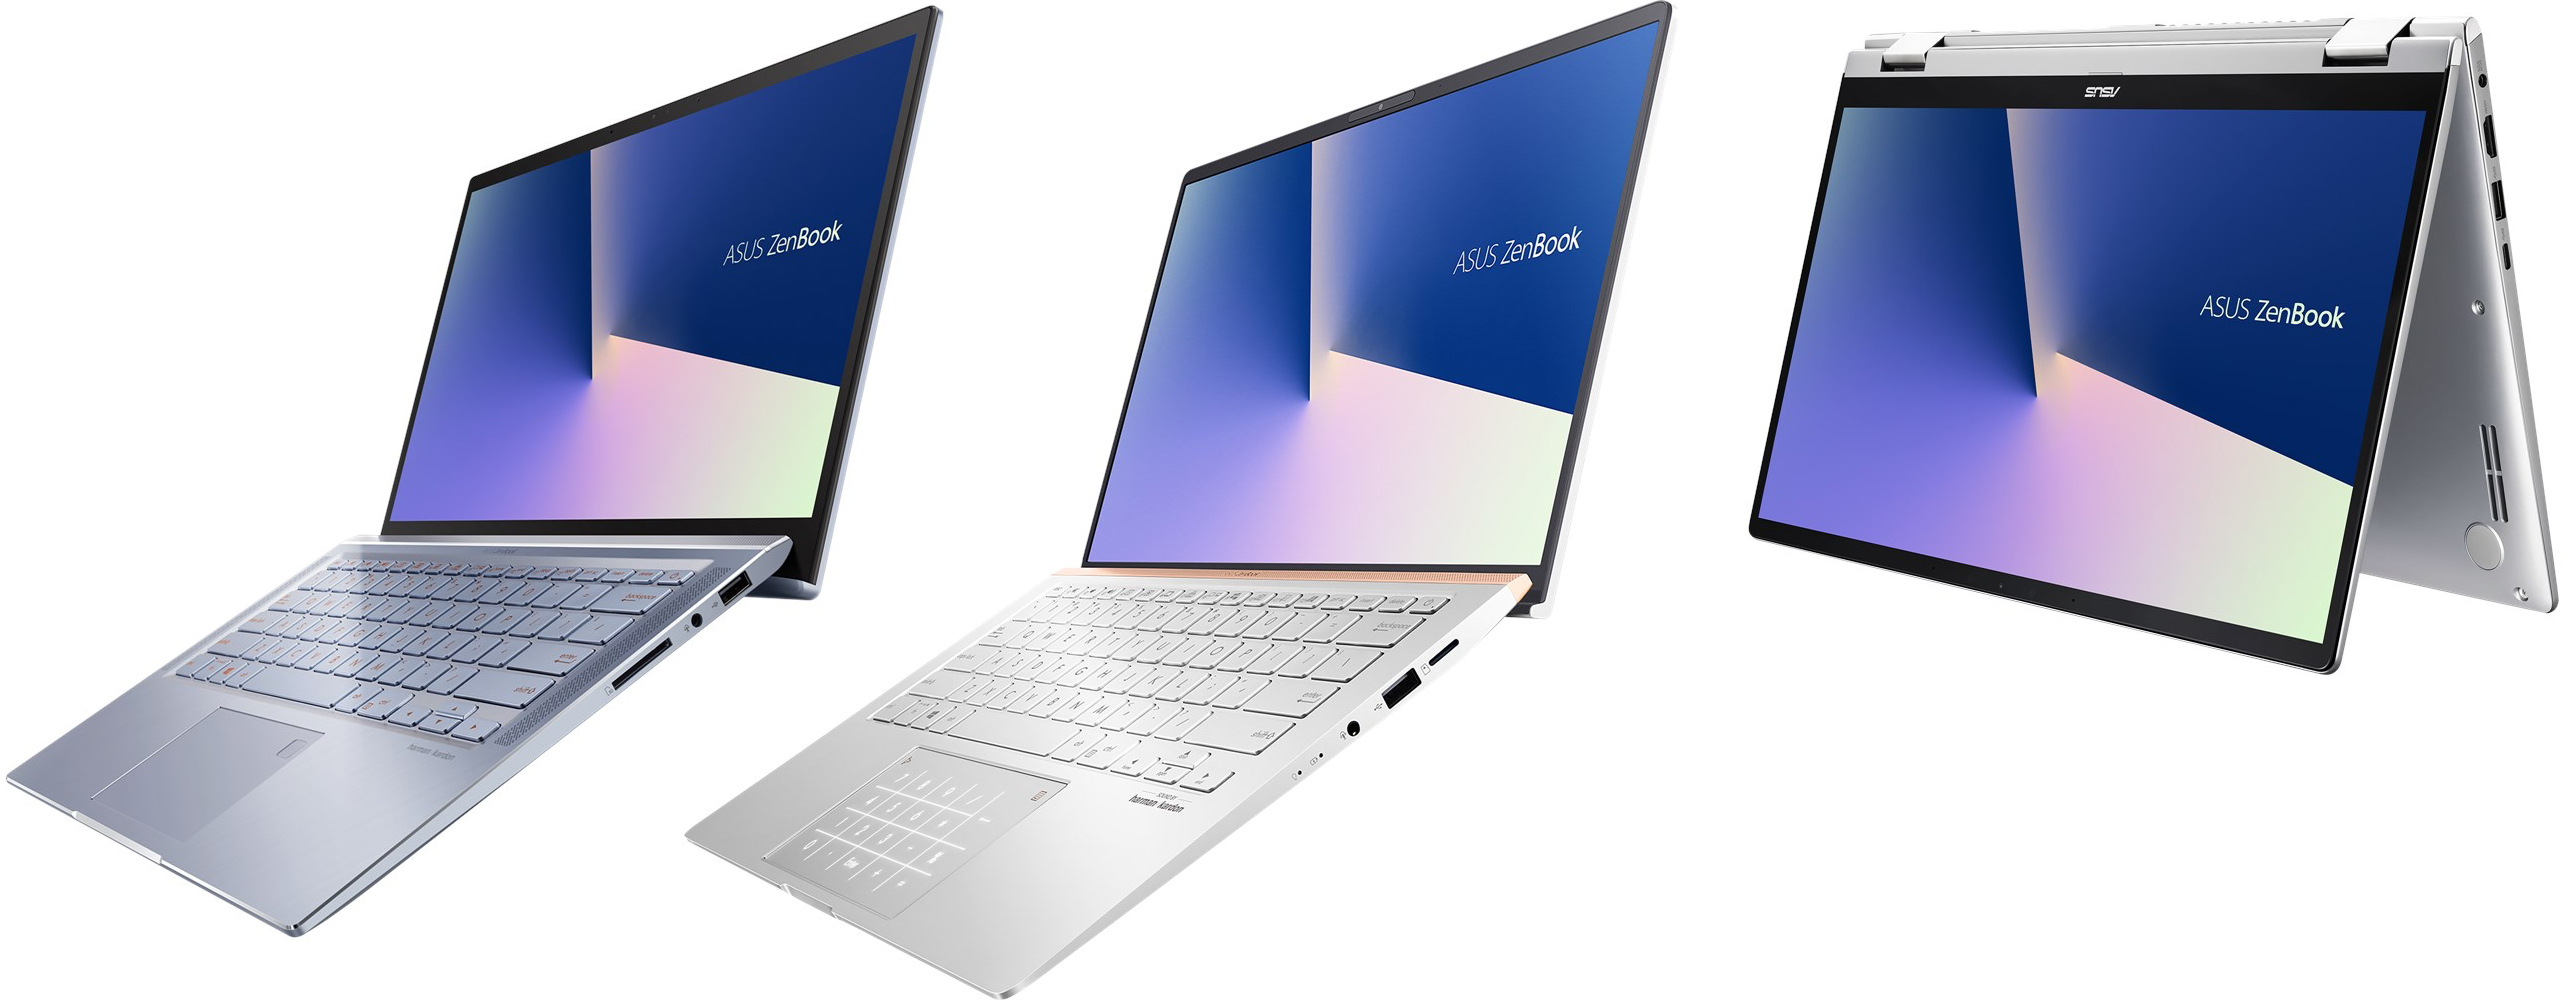 Asus Launches Amd Ryzen Based Zenbooks Two Laptops A Convertible